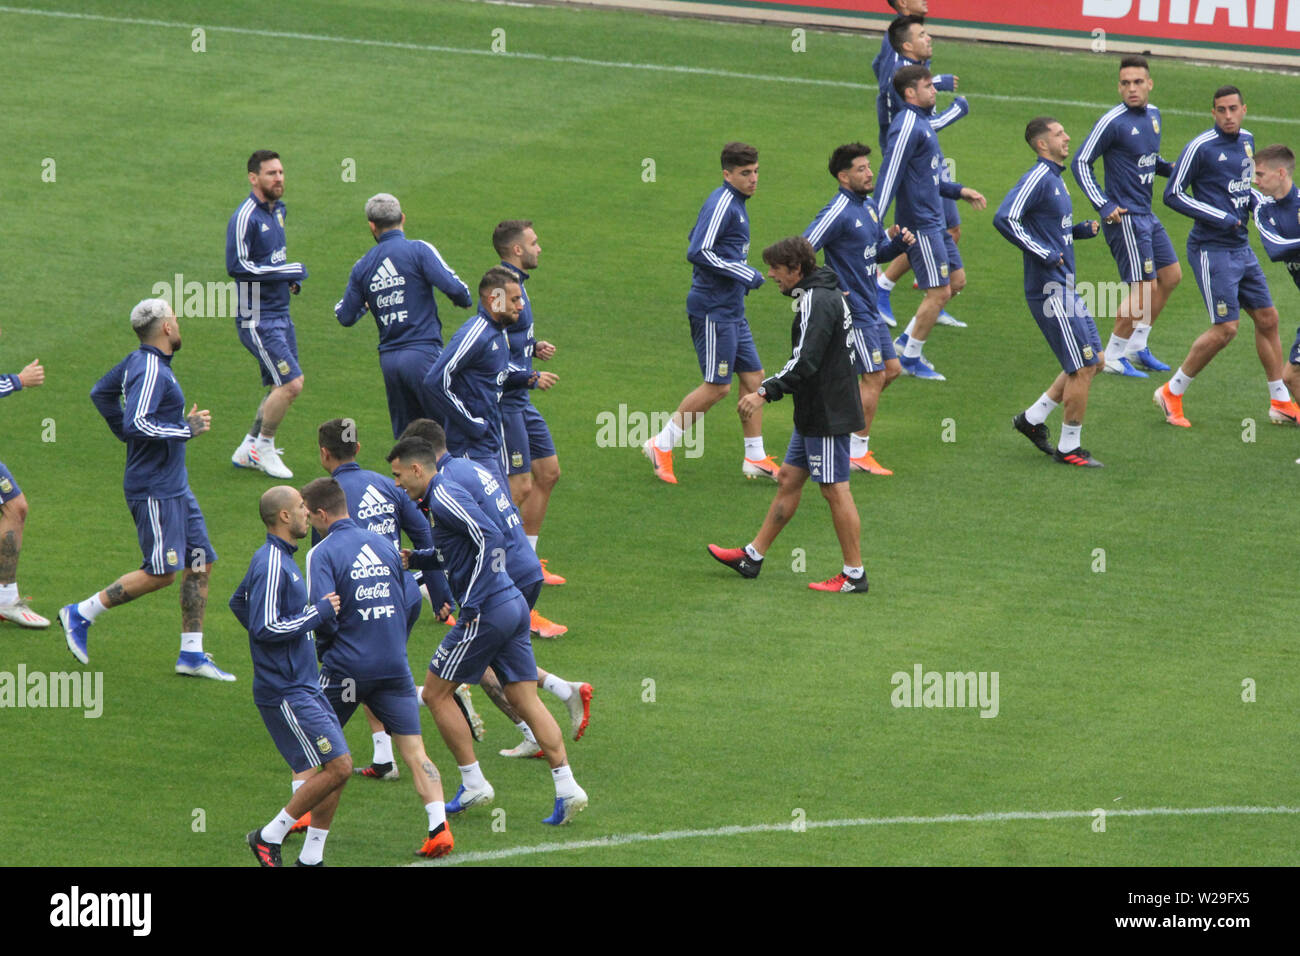 Brazil. 05th July, 2019. Argentina's training at Pacaembu Stadium this Friday morning before the match for third place in the 2019 Copa America against the Chilean team. Credit: Niyi Fote/Thenews2/Pacific Press/Alamy Live News - Stock Image